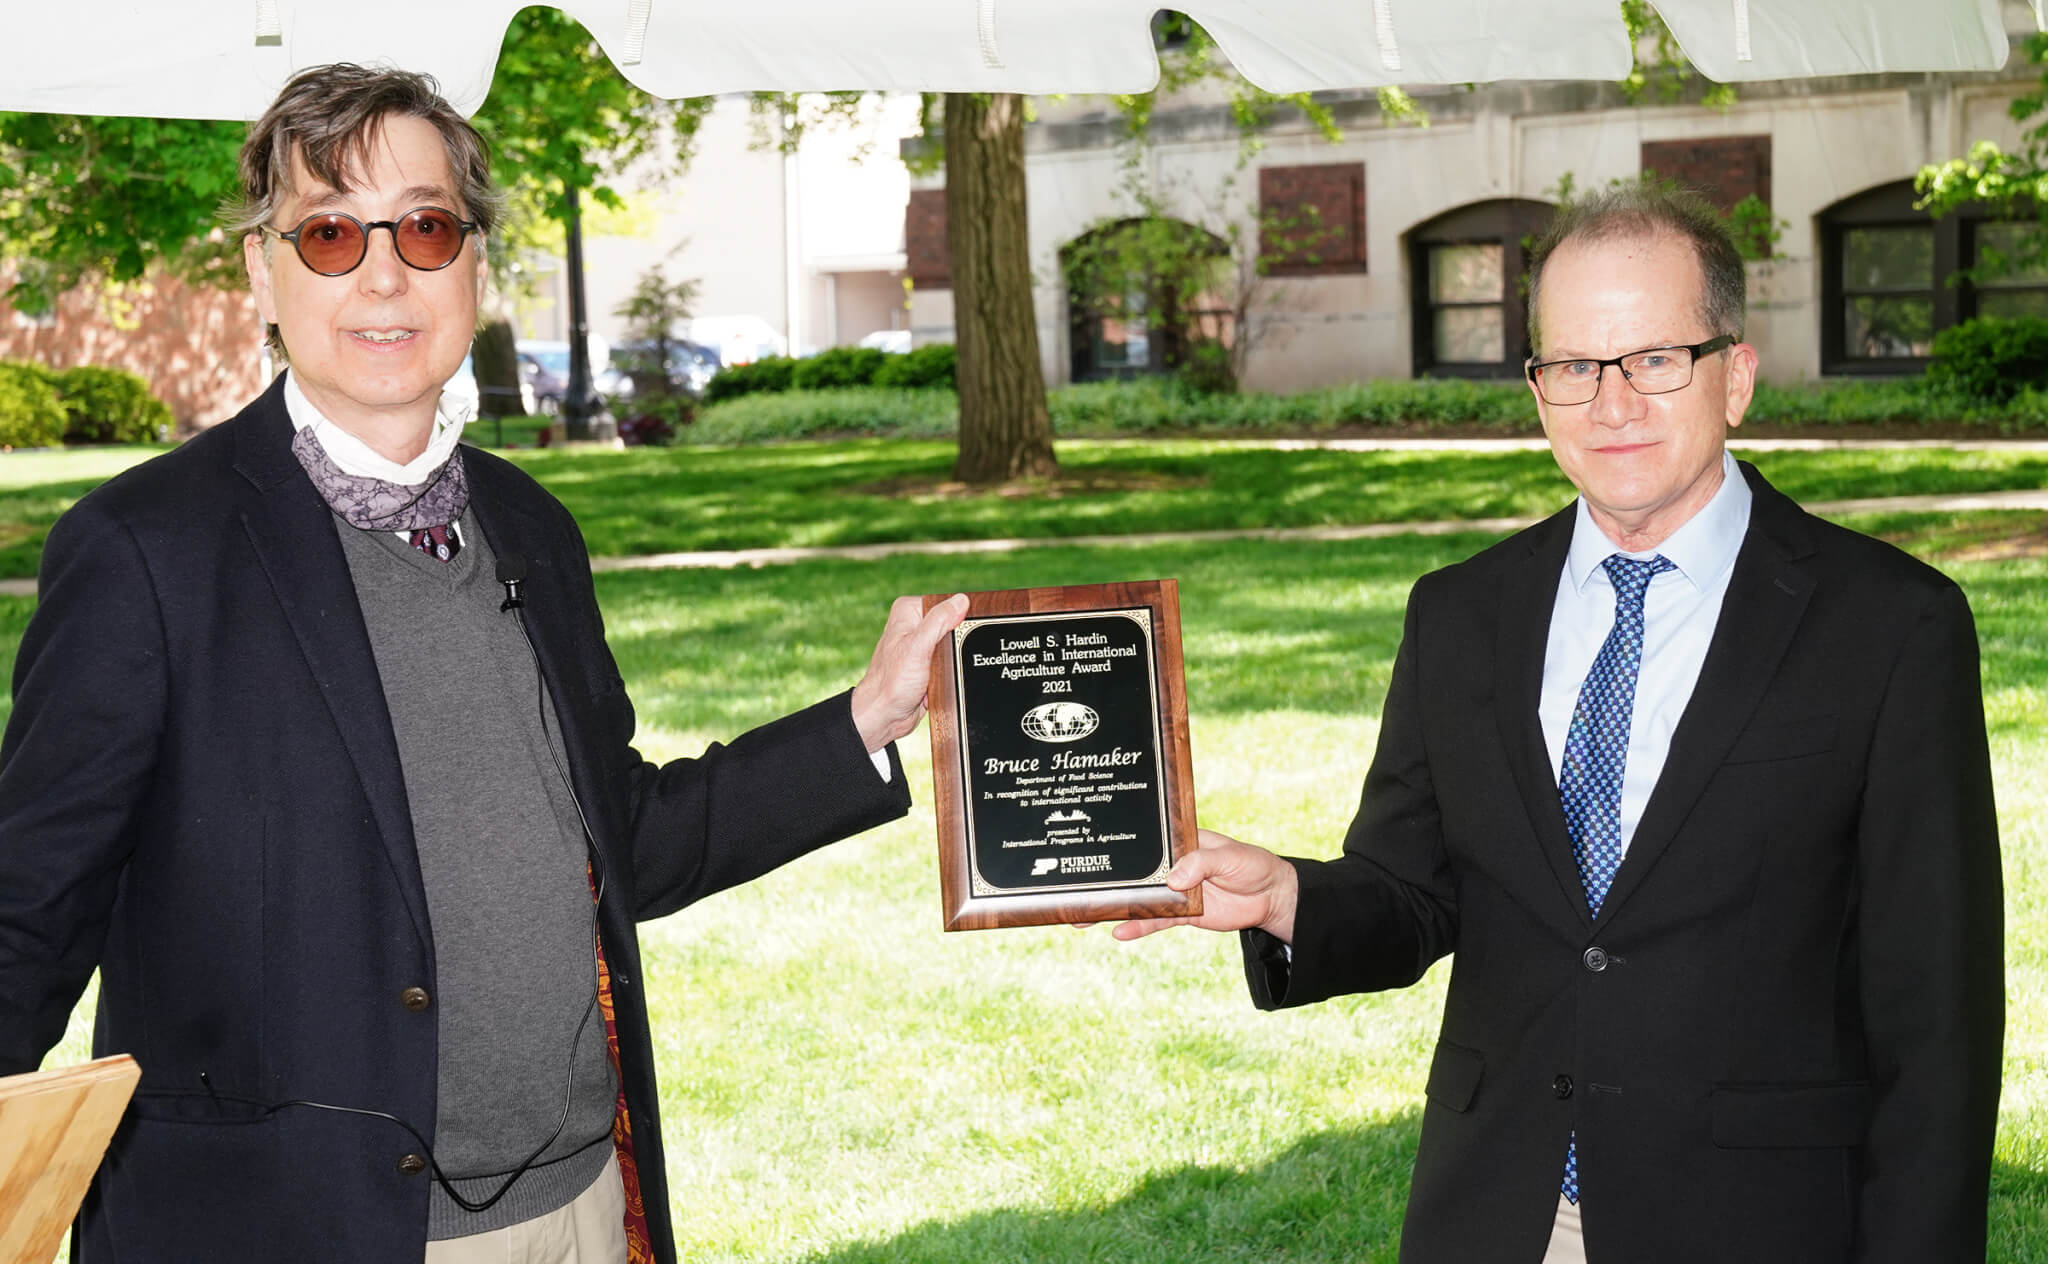 Gerald Shively, associate dean and director of Purdue University's Office of International Programs in Agriculture, presents the Hardin Award to Hamaker.